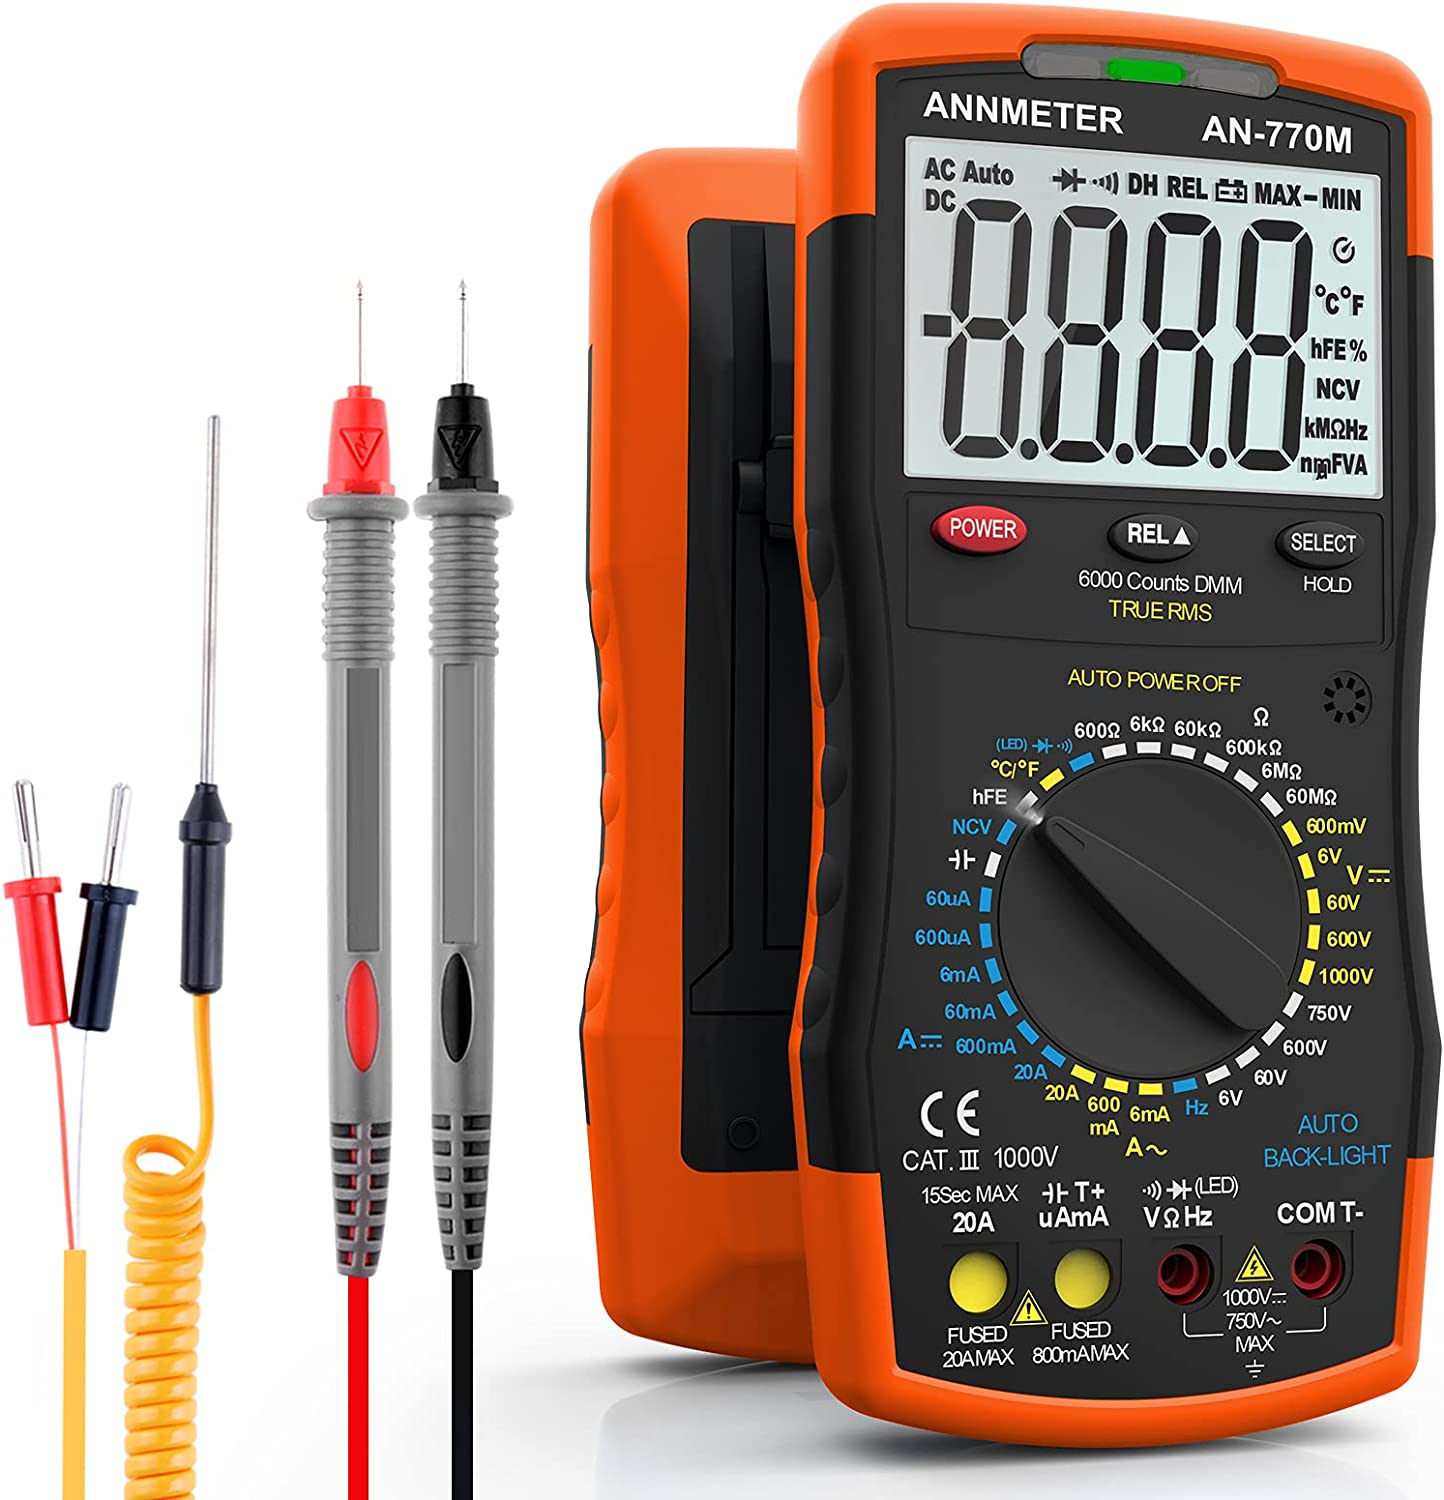 AIOMEST Digital Multimeter 770M Arlington Selling and selling Mall Voltage Amp Meas DMM Ohm Meter